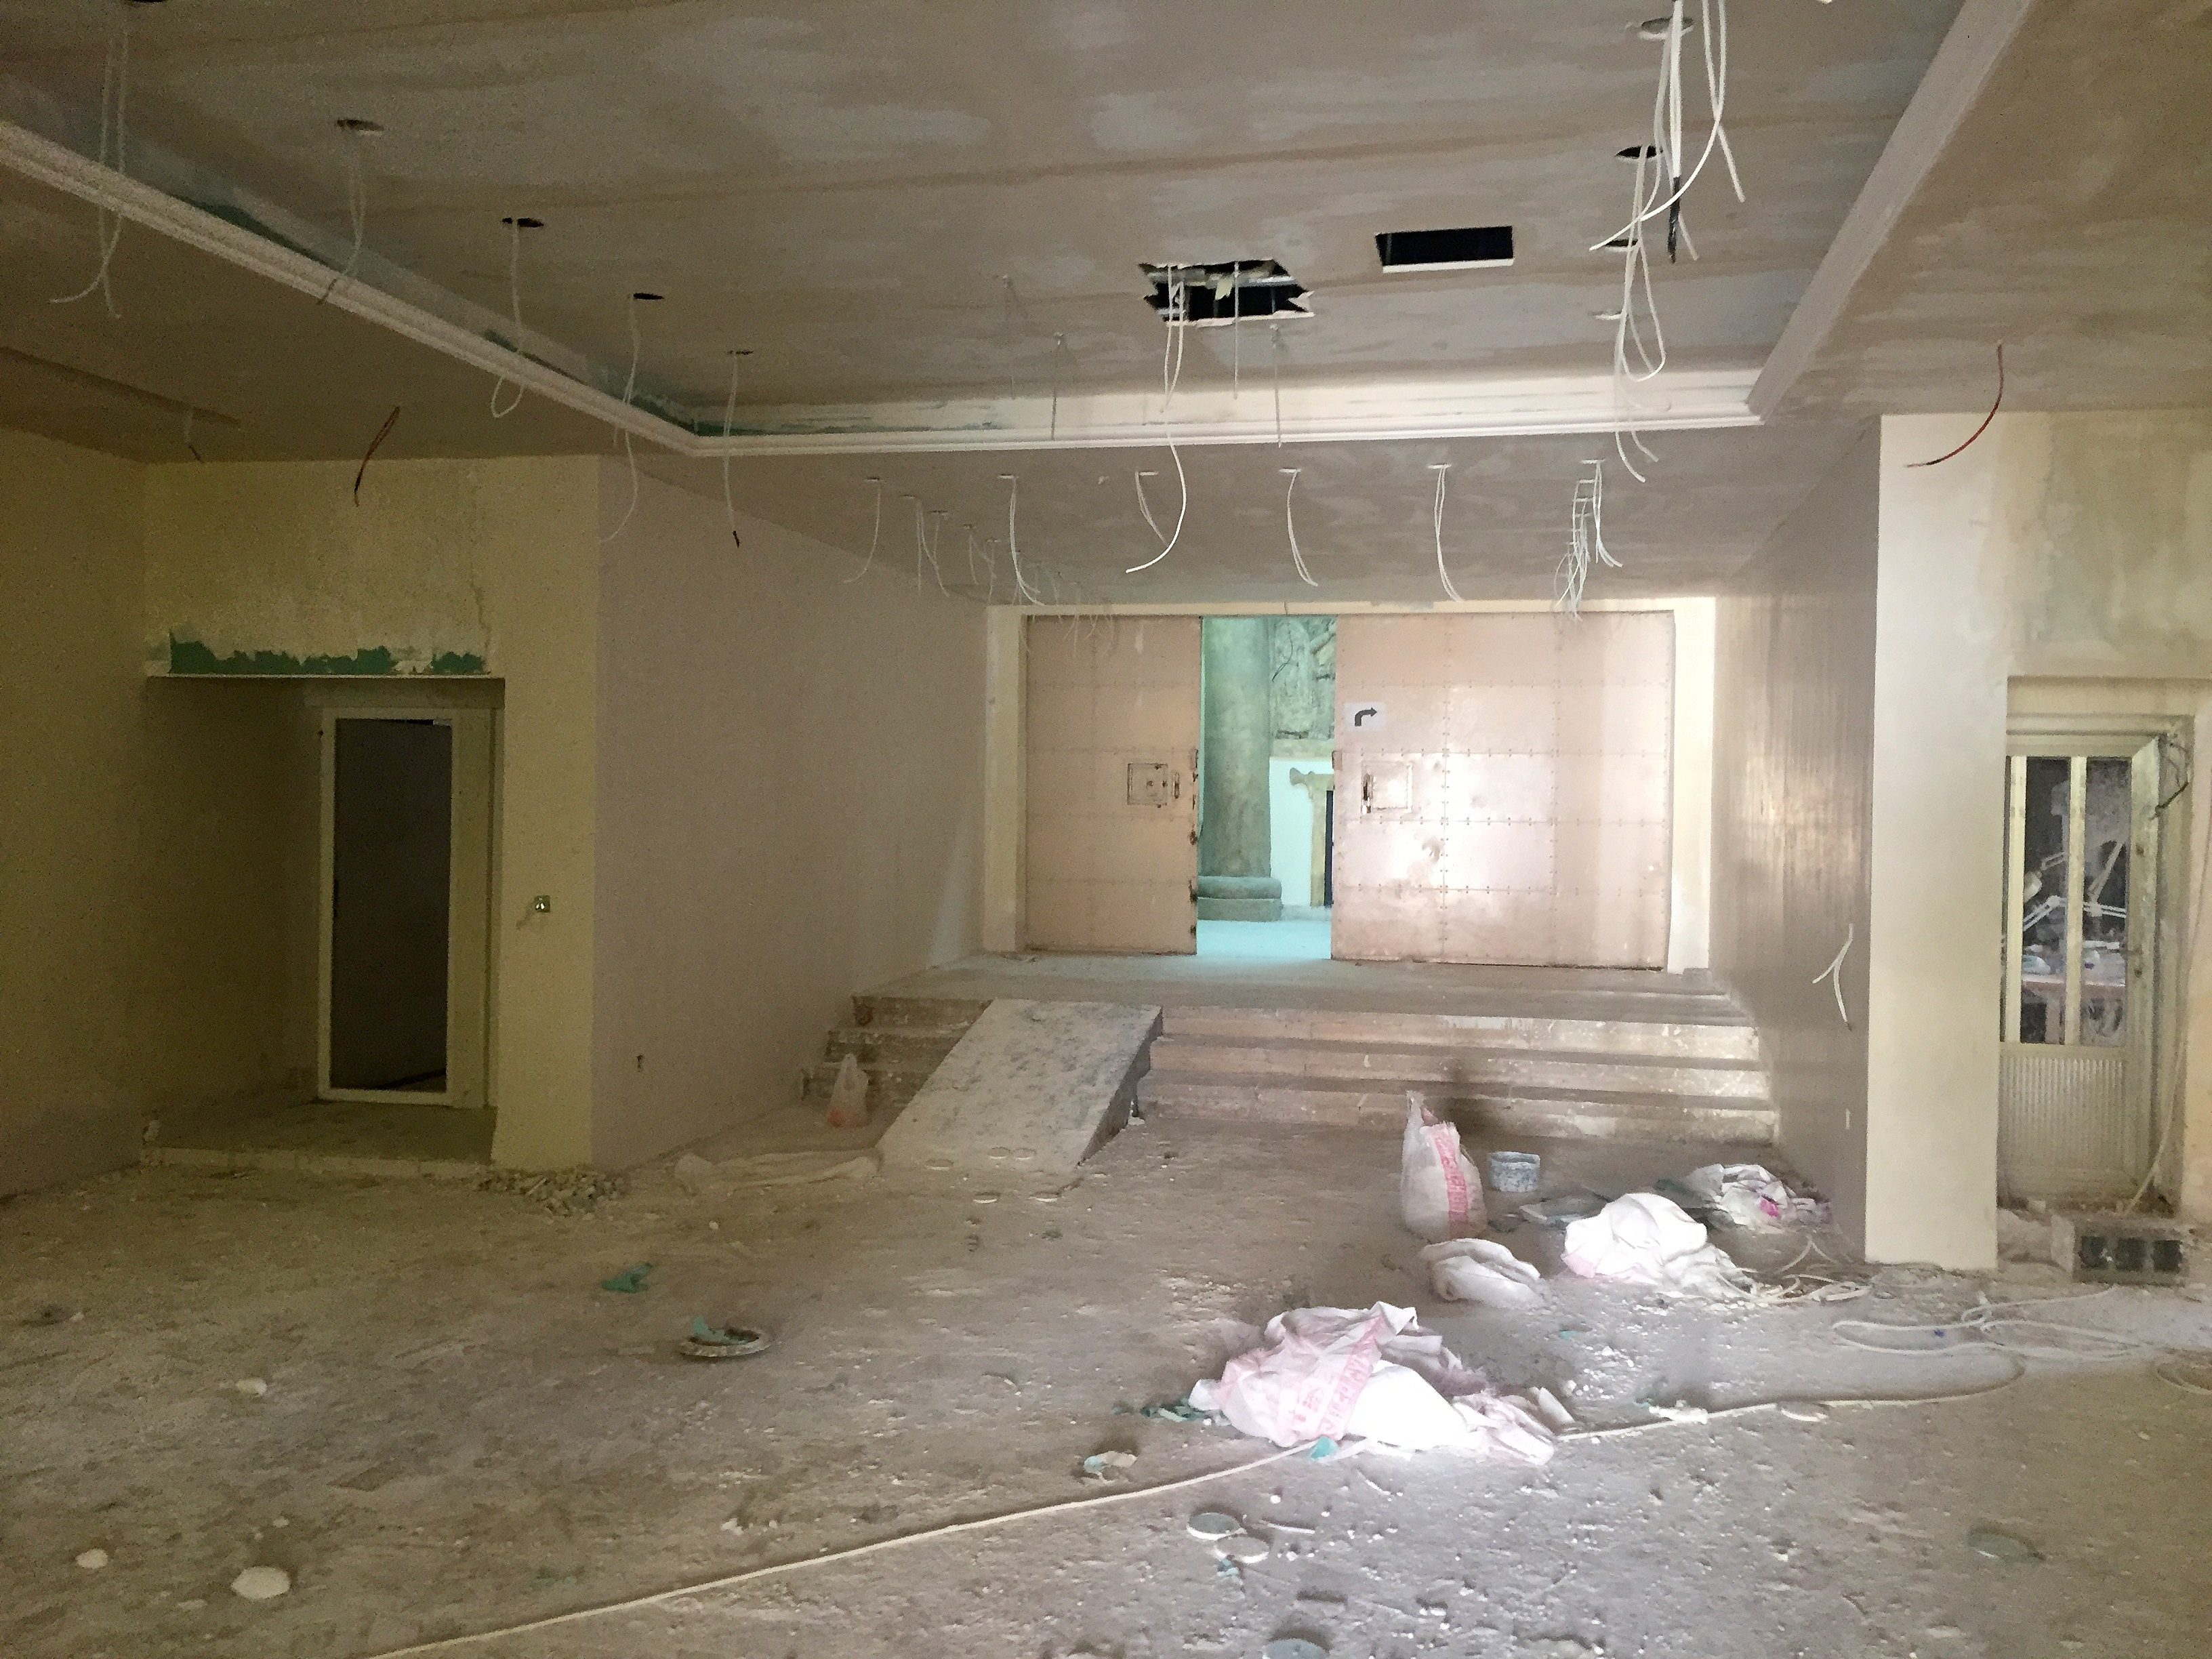 file the sulaymaniyah museum s entrance hall undergoing renovation rh commons wikimedia org how much to finish a basement in colorado how much to finish a basement edmonton